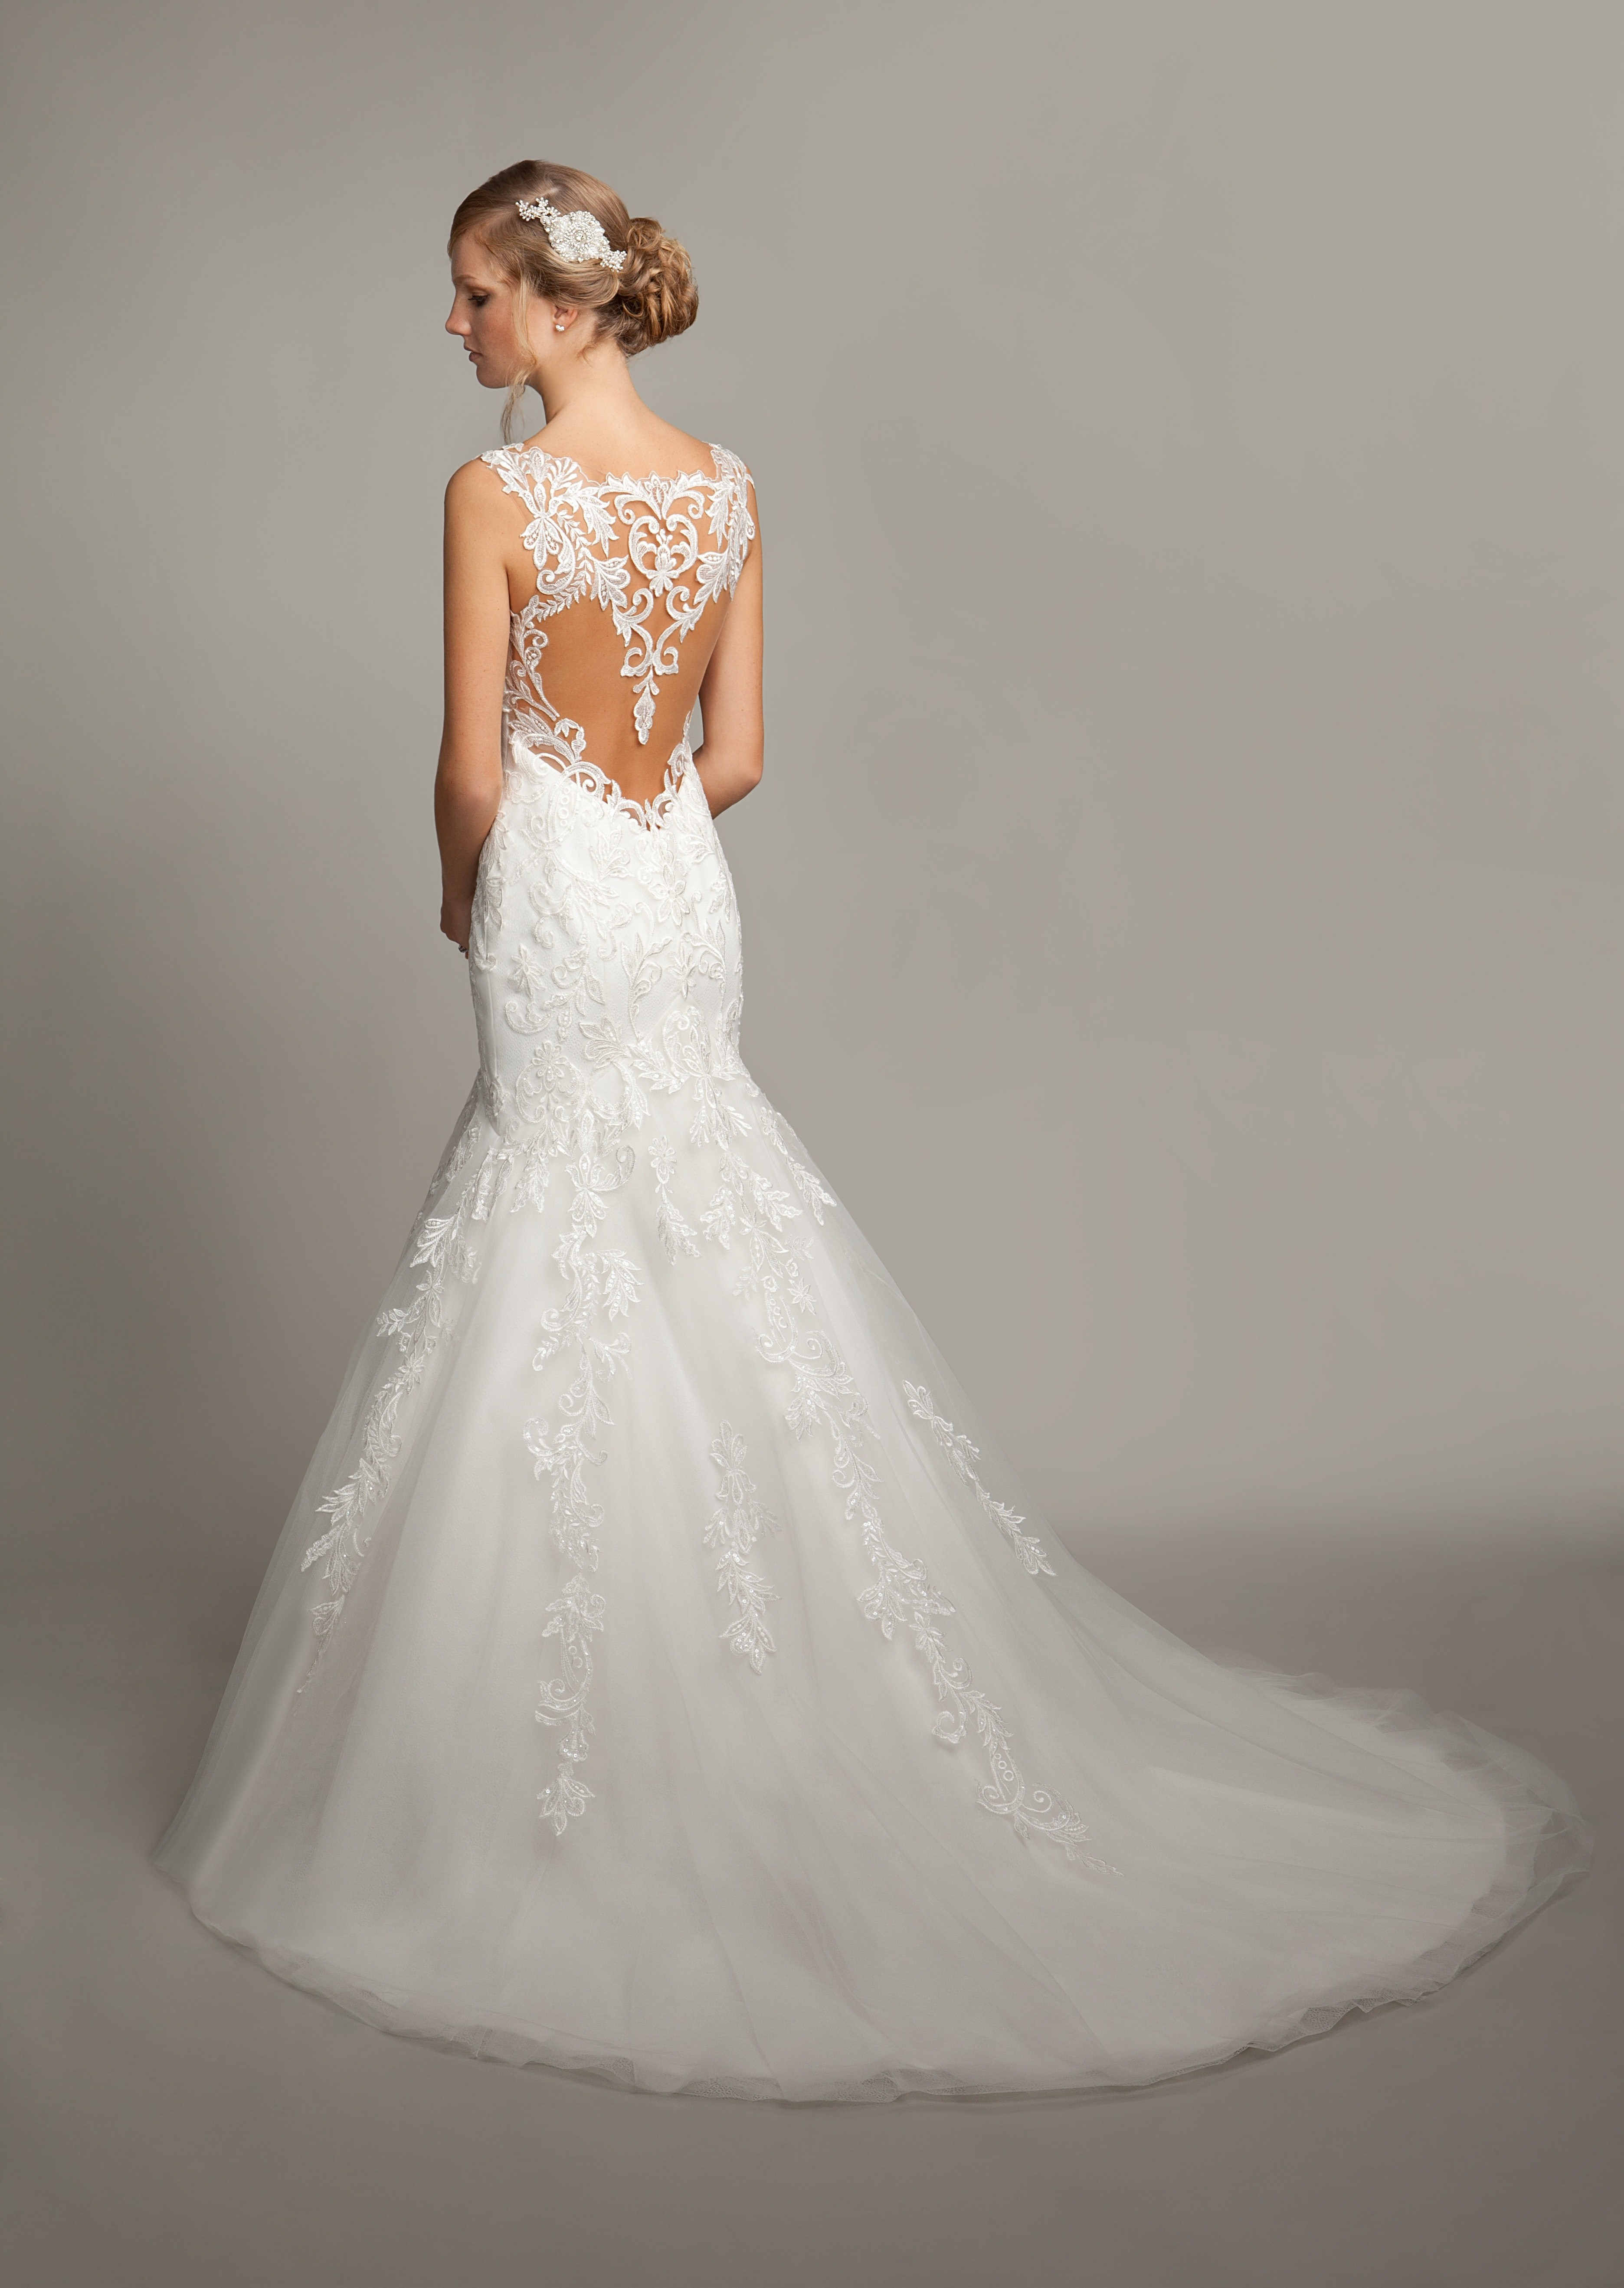 Yours Truly Bridal House Ltd - Wedding and Btridesmaids Dresses